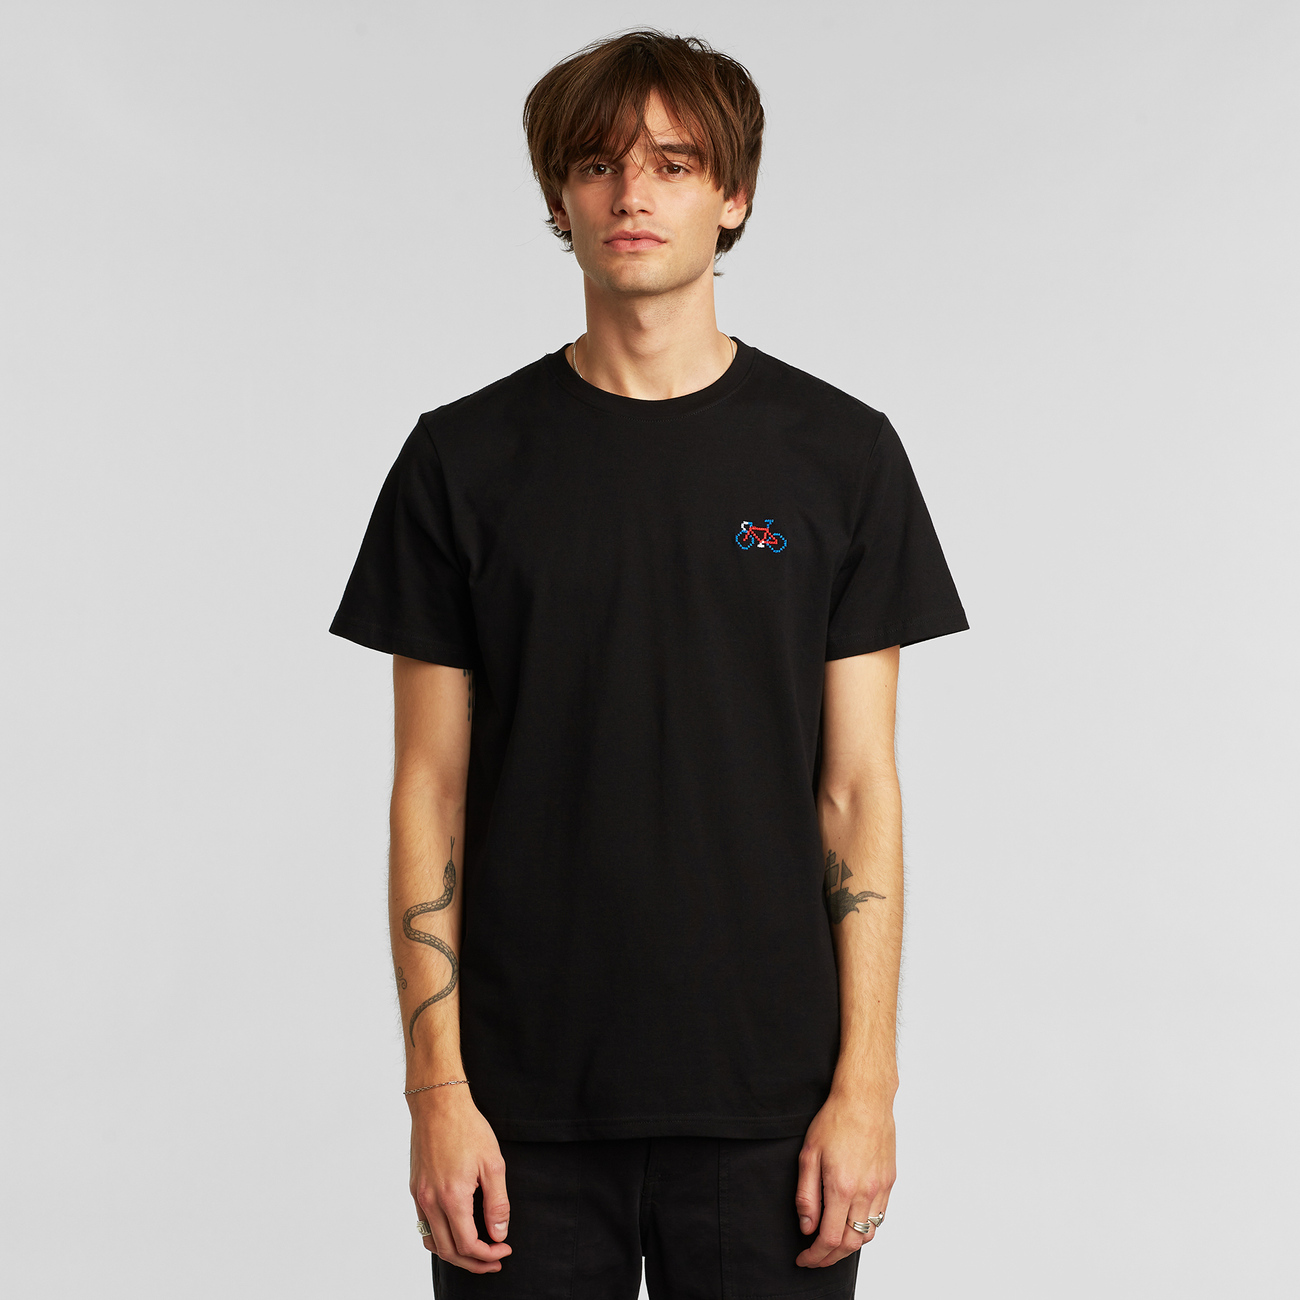 T-shirt Stockholm Stitch Bike Black